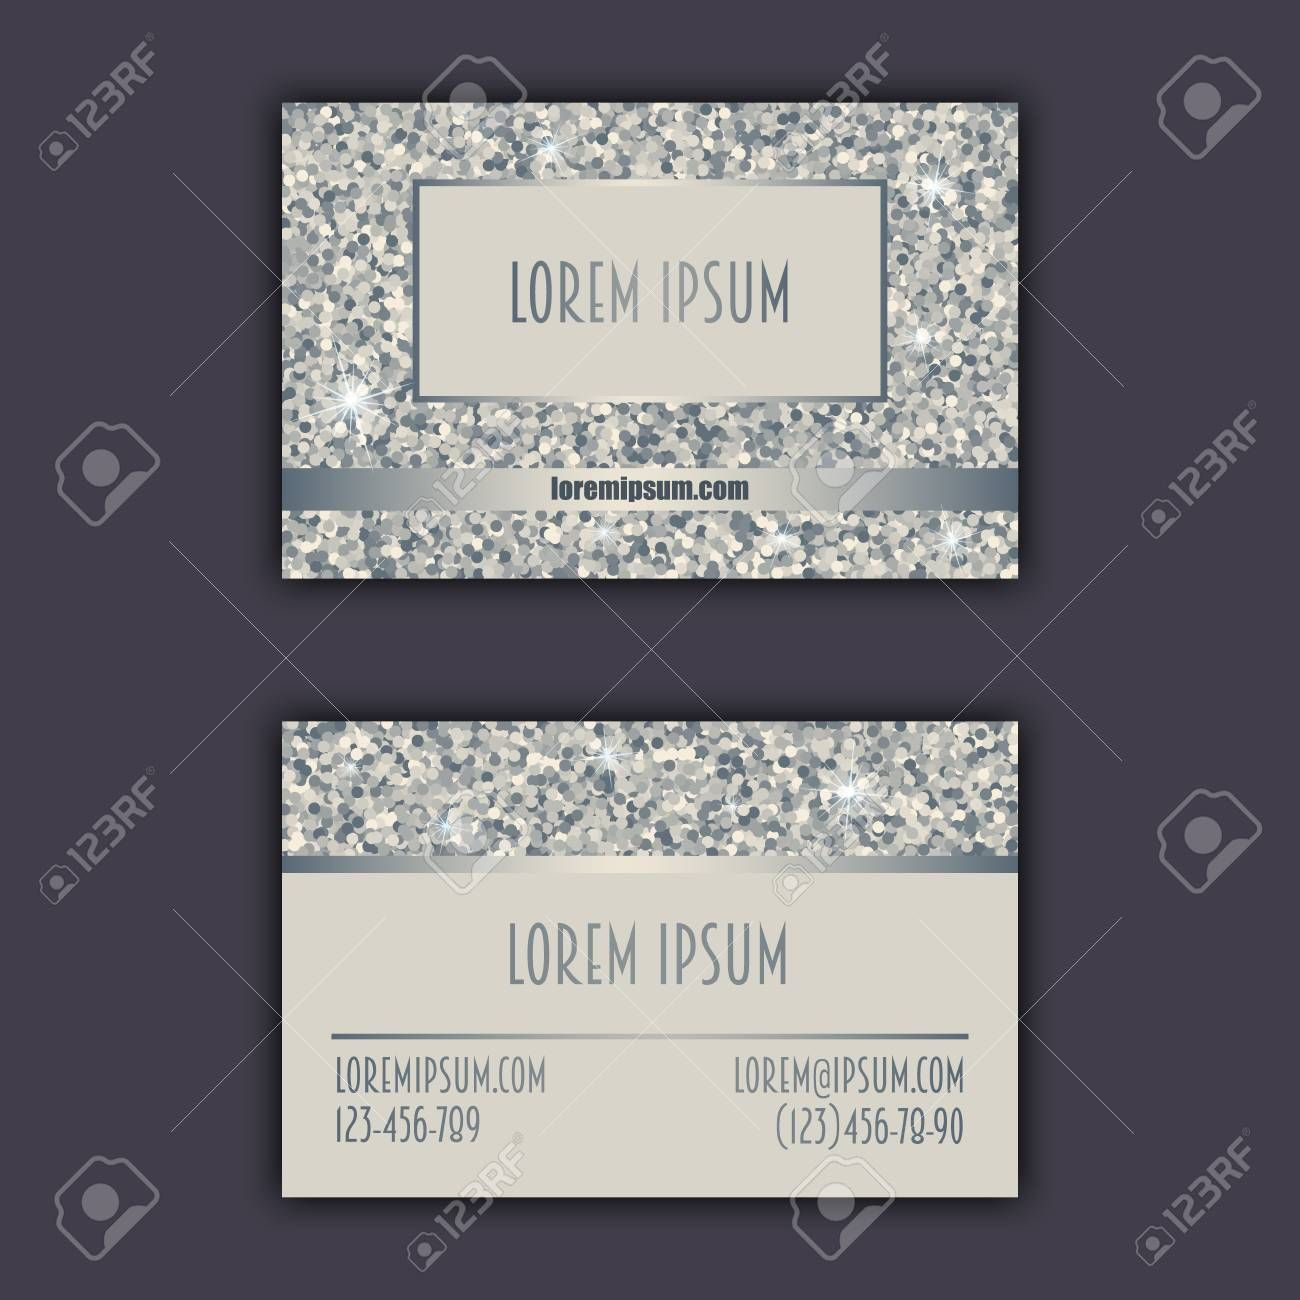 Business Card Templates With Glitter Shining Background For Christian Business Cards Templat Free Business Card Templates Card Templates Free Id Card Template